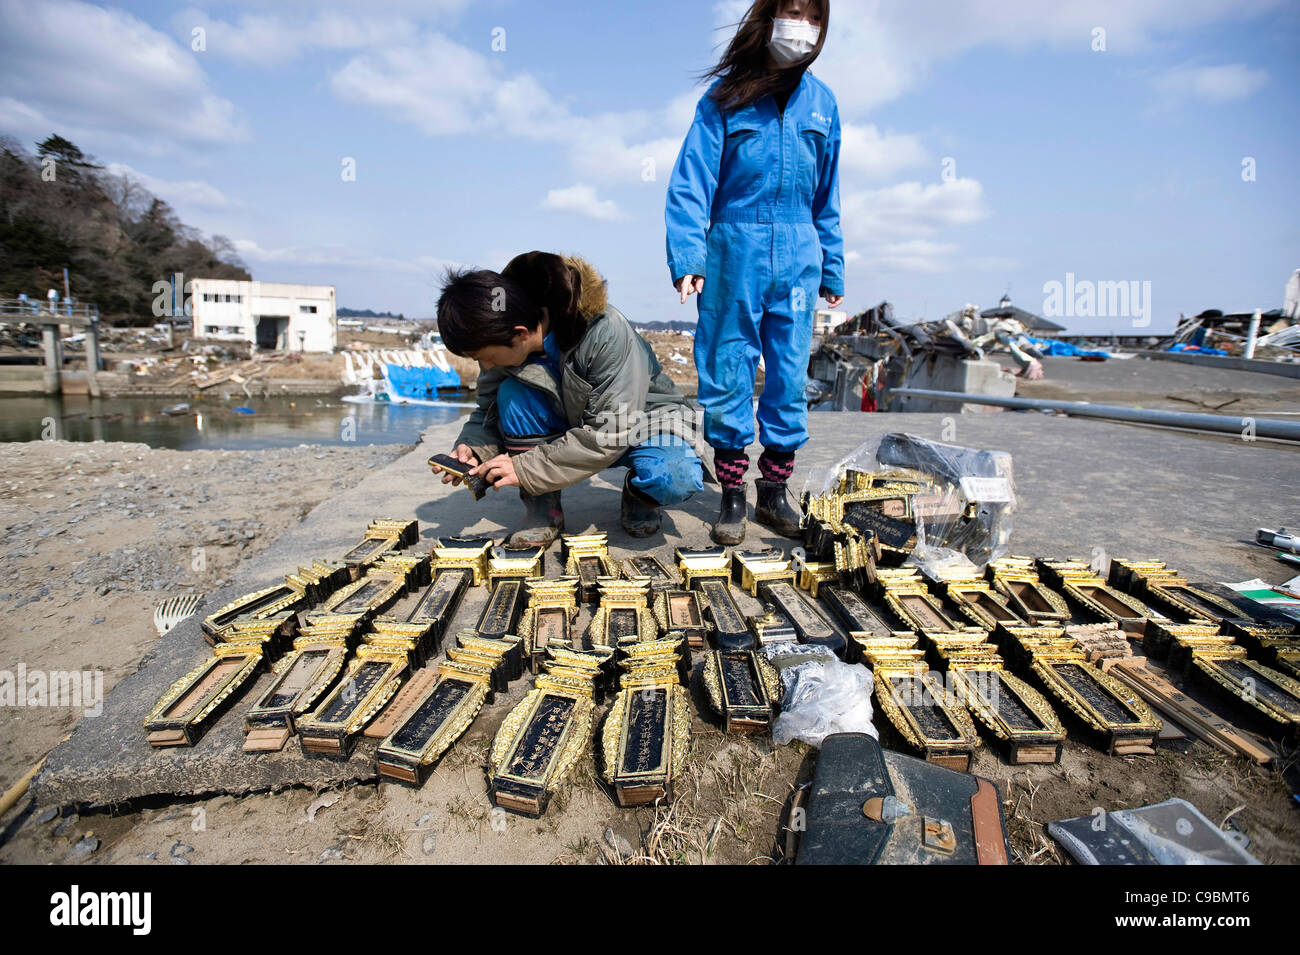 Kenji Onodera (35) and his wife Hiromi (40), look at items salvaged from a temple badly damaged by the March  tsunami - Stock Image